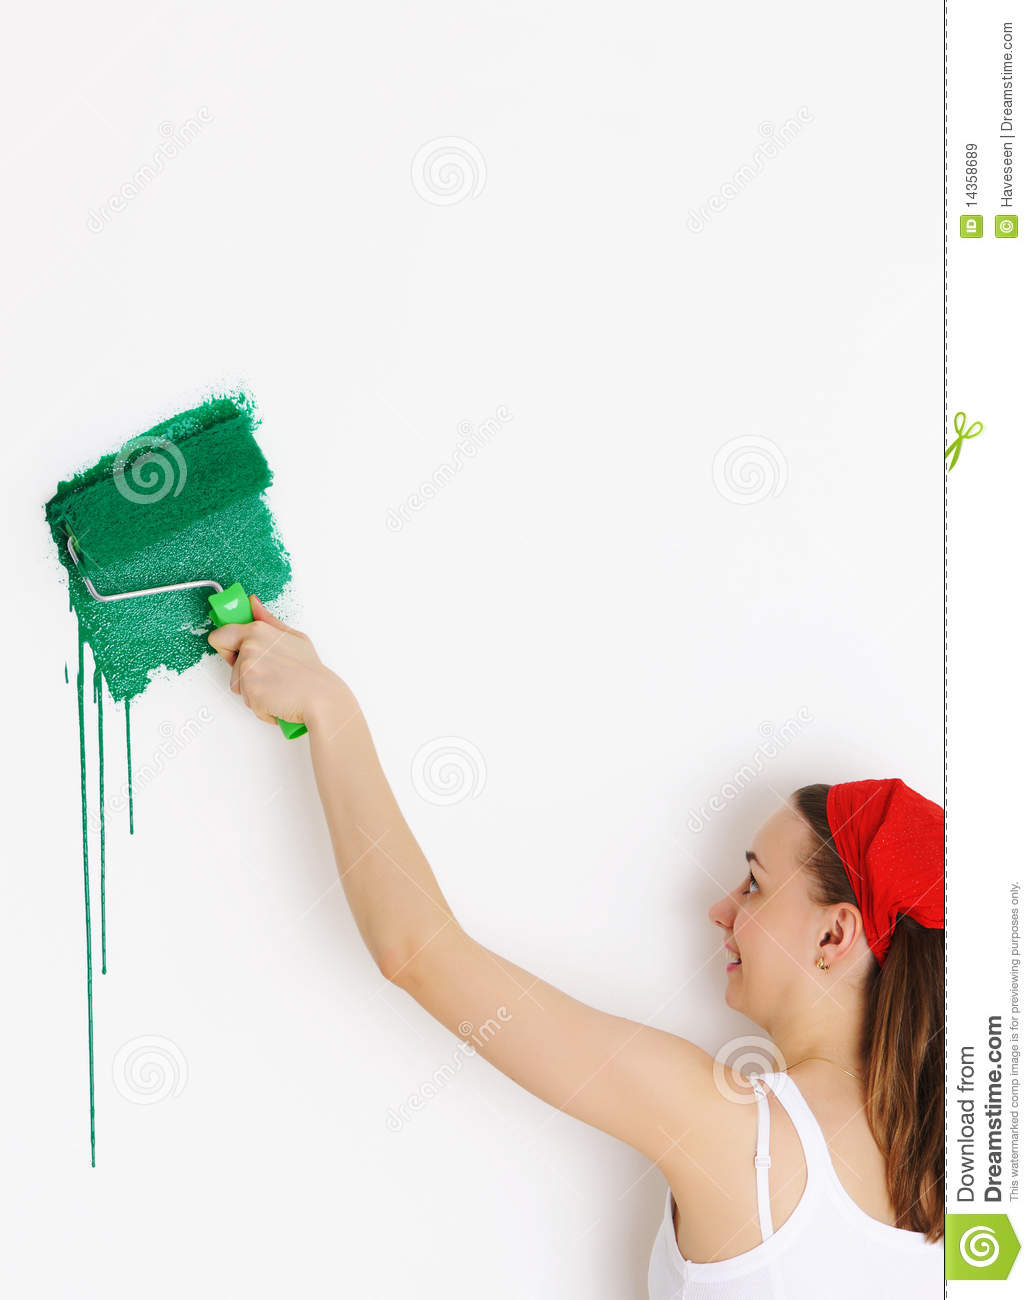 Painting Walls Royalty Free Stock Images Image 14358689